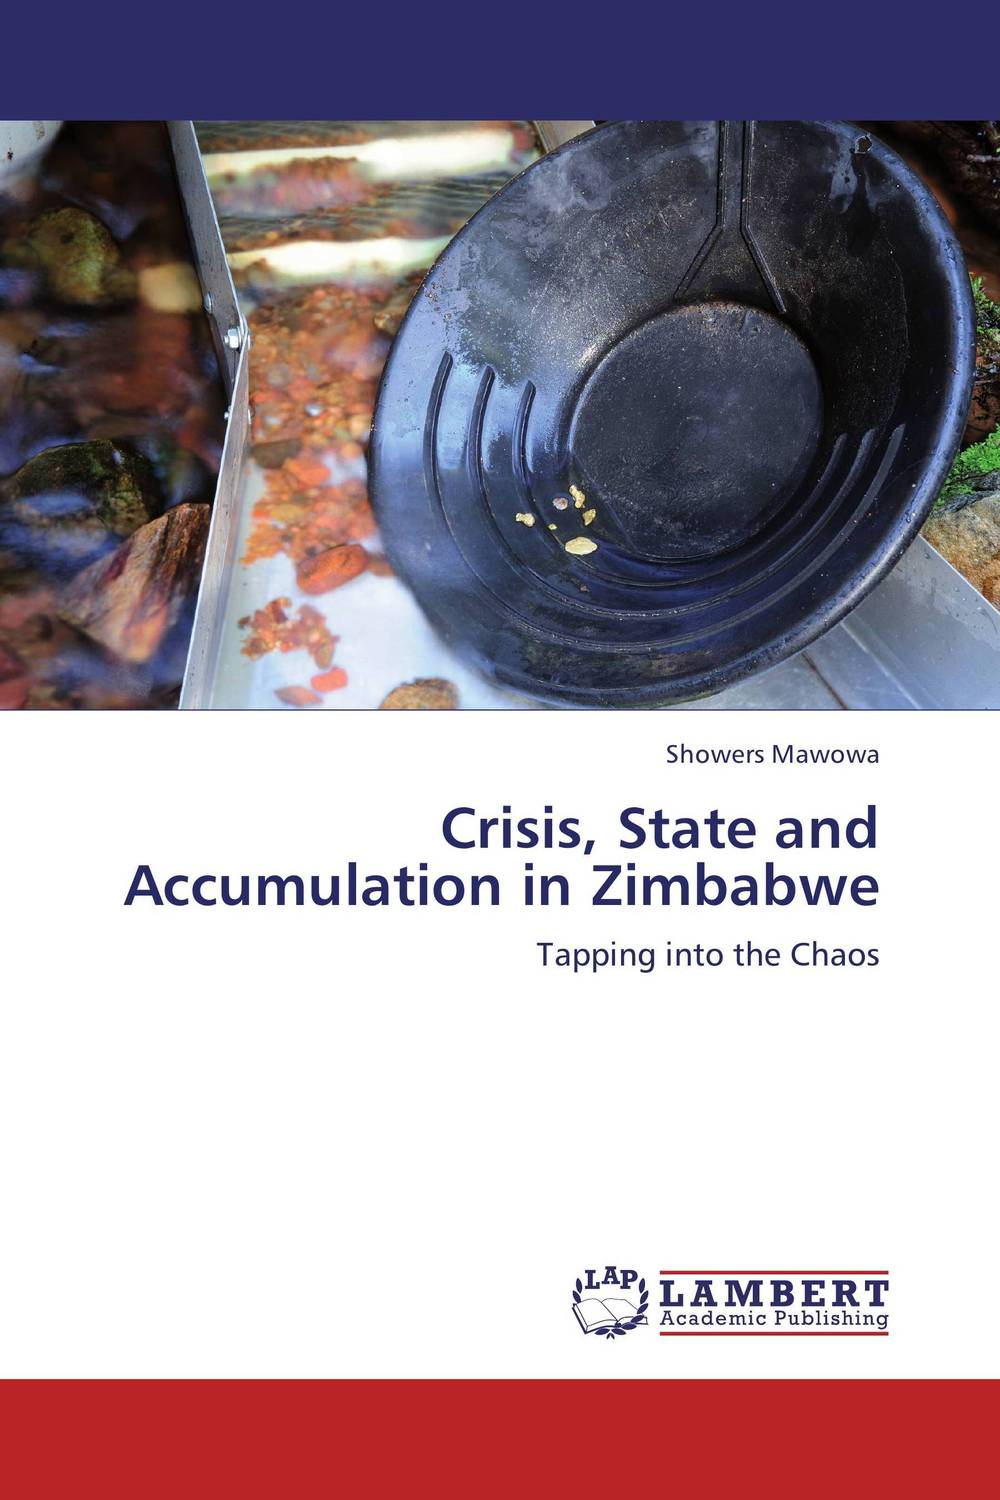 Фото Crisis, State and Accumulation in Zimbabwe business and ethics in a country with political socio economic crisis